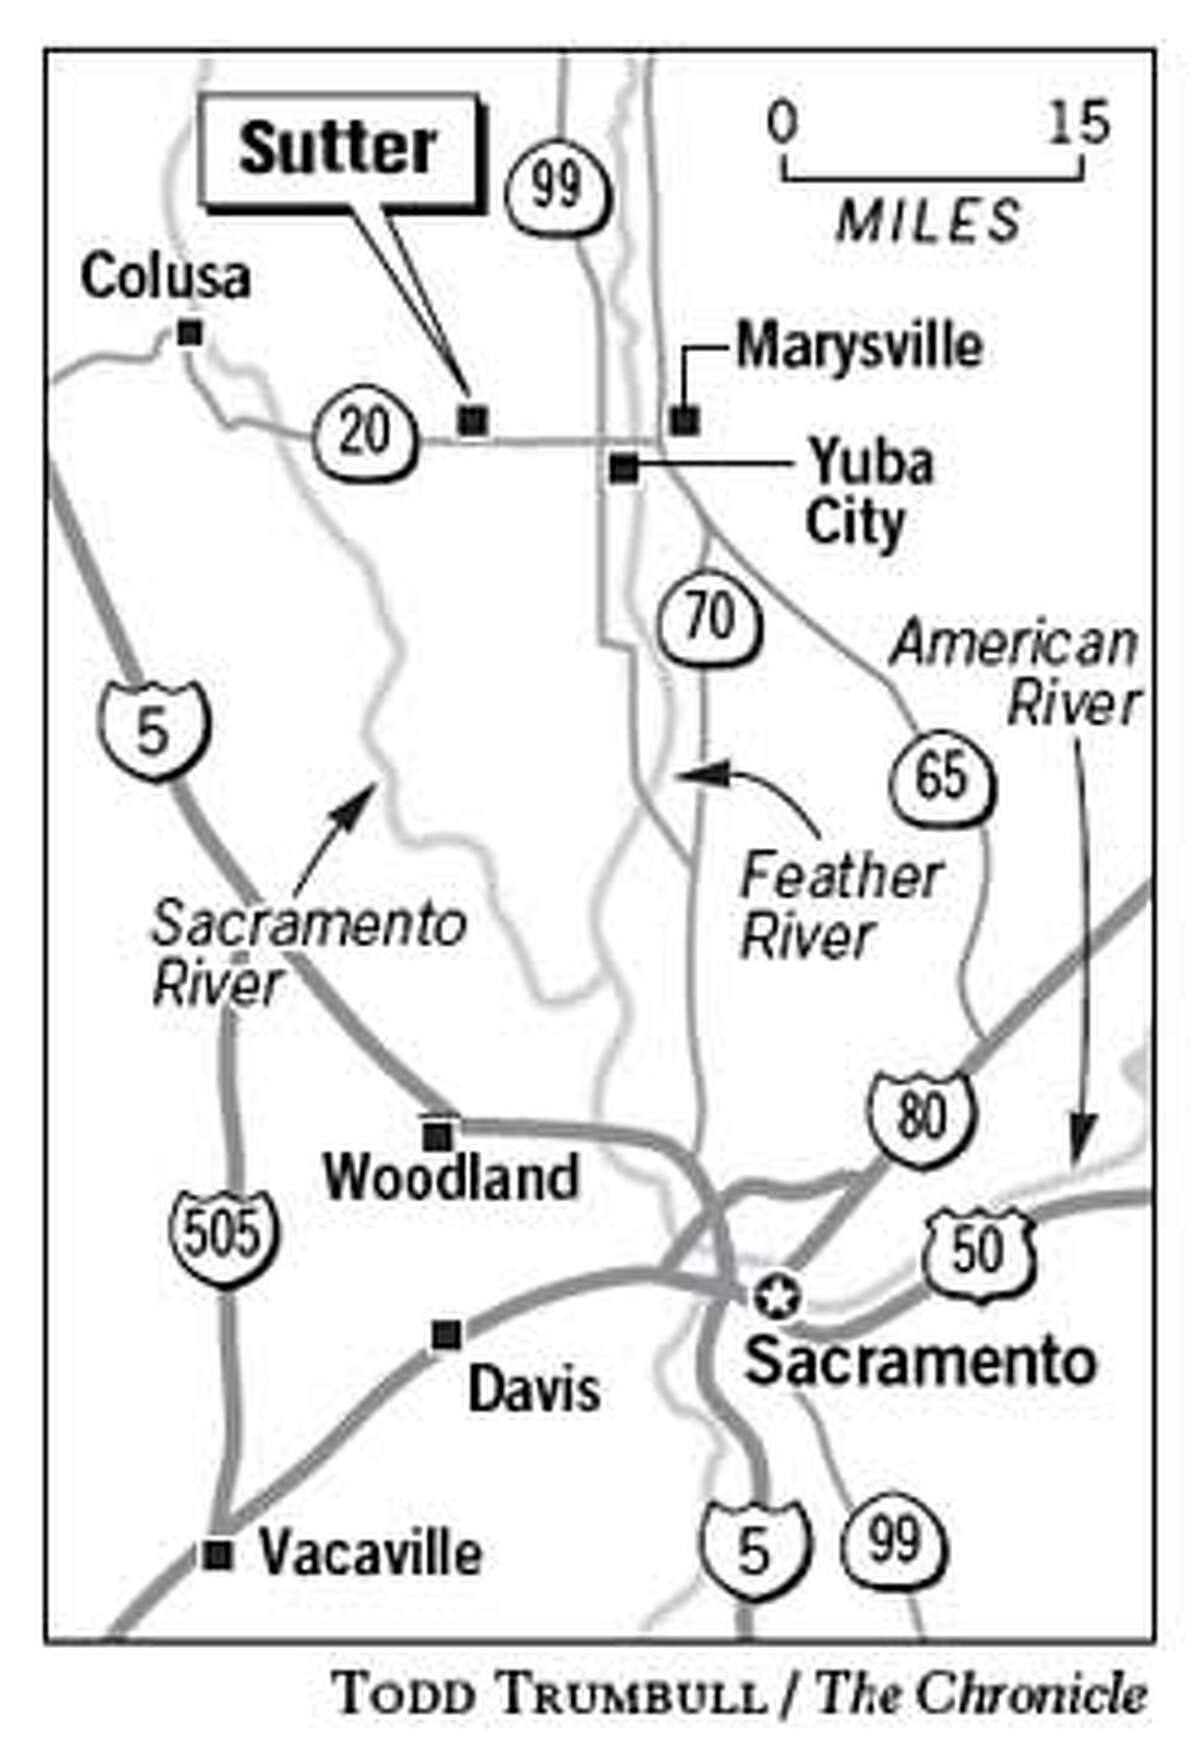 Sutter. Chronicle Graphic by Todd Trumbull